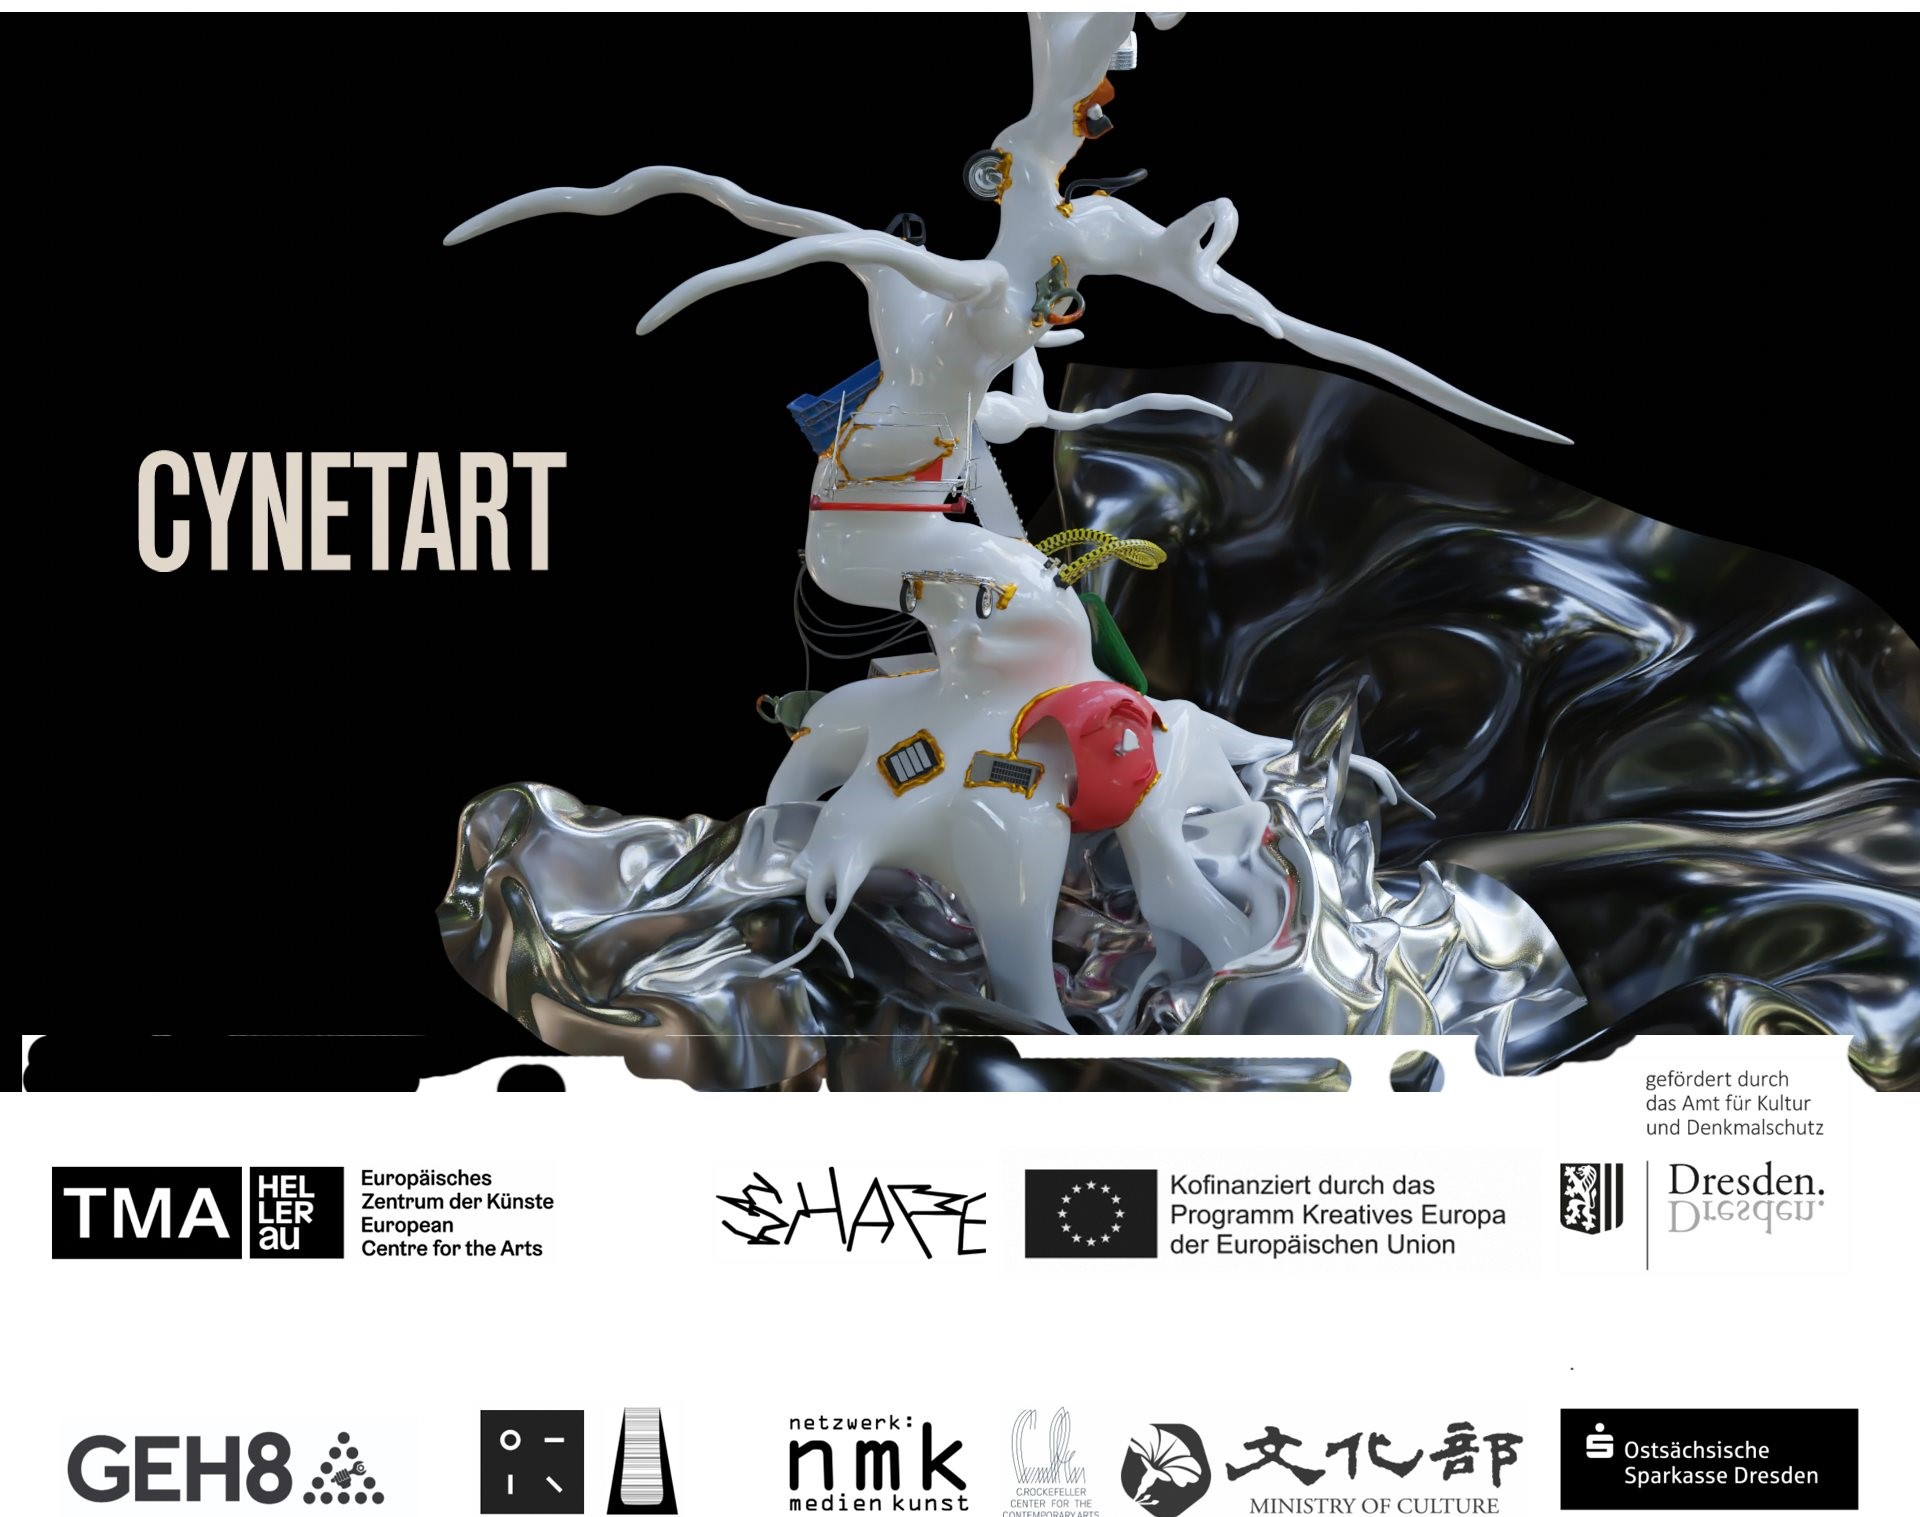 Taiwanese artists to present collaborative projects at media art festival in Germany